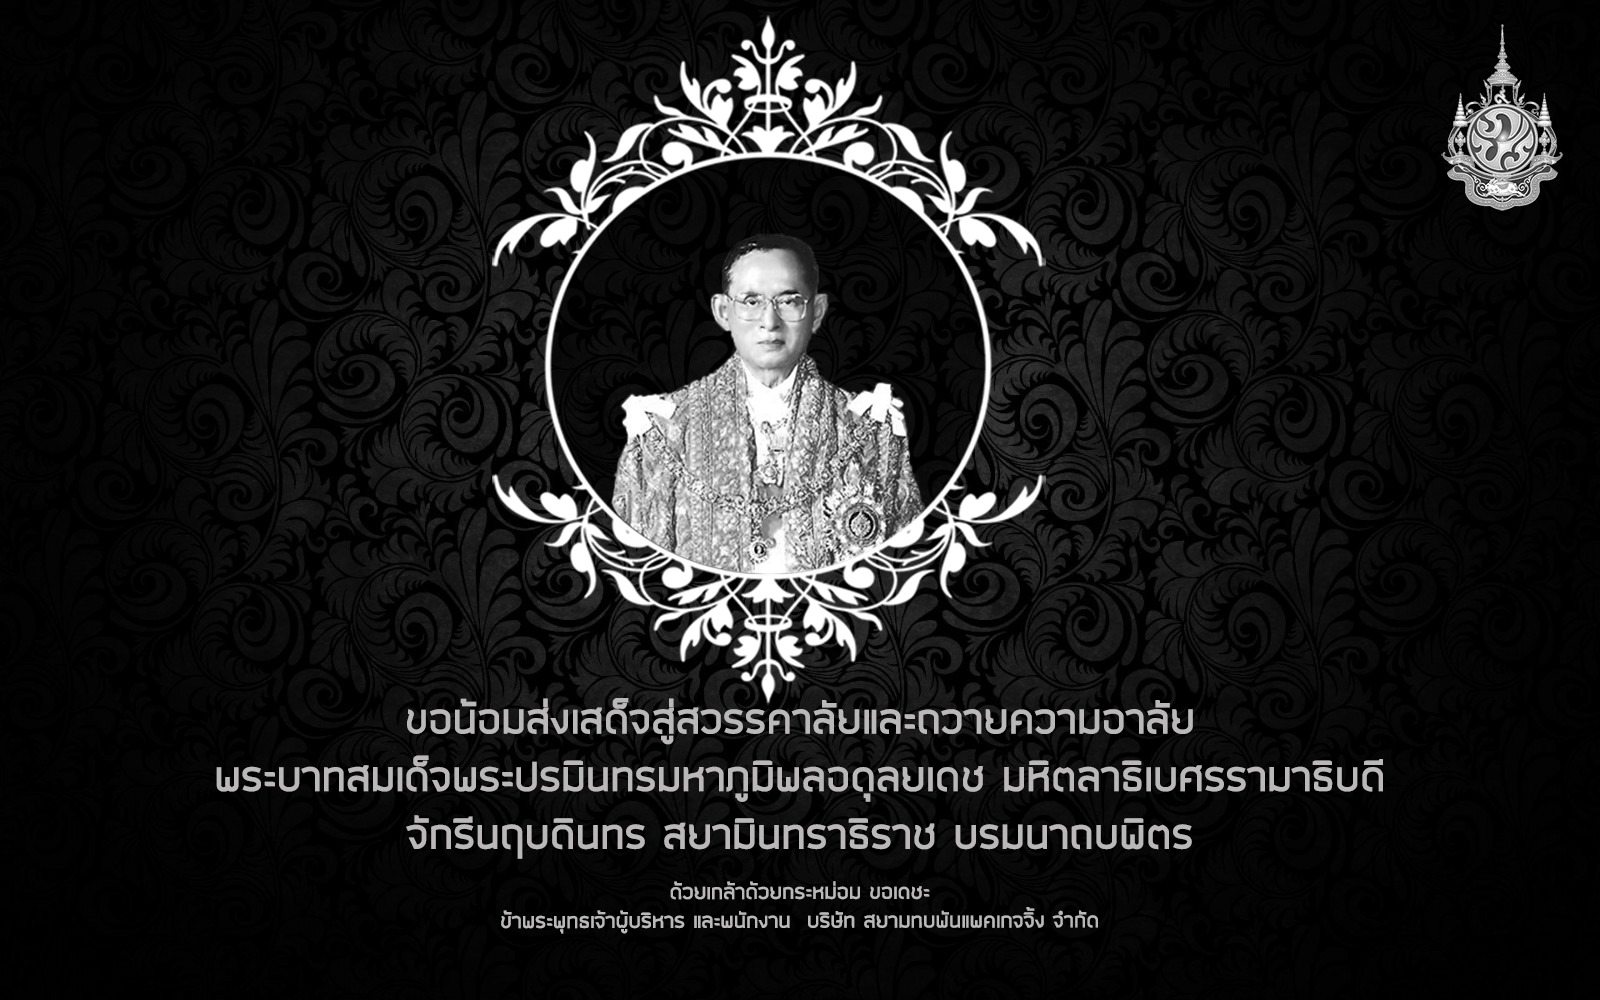 Condolence my beloved king